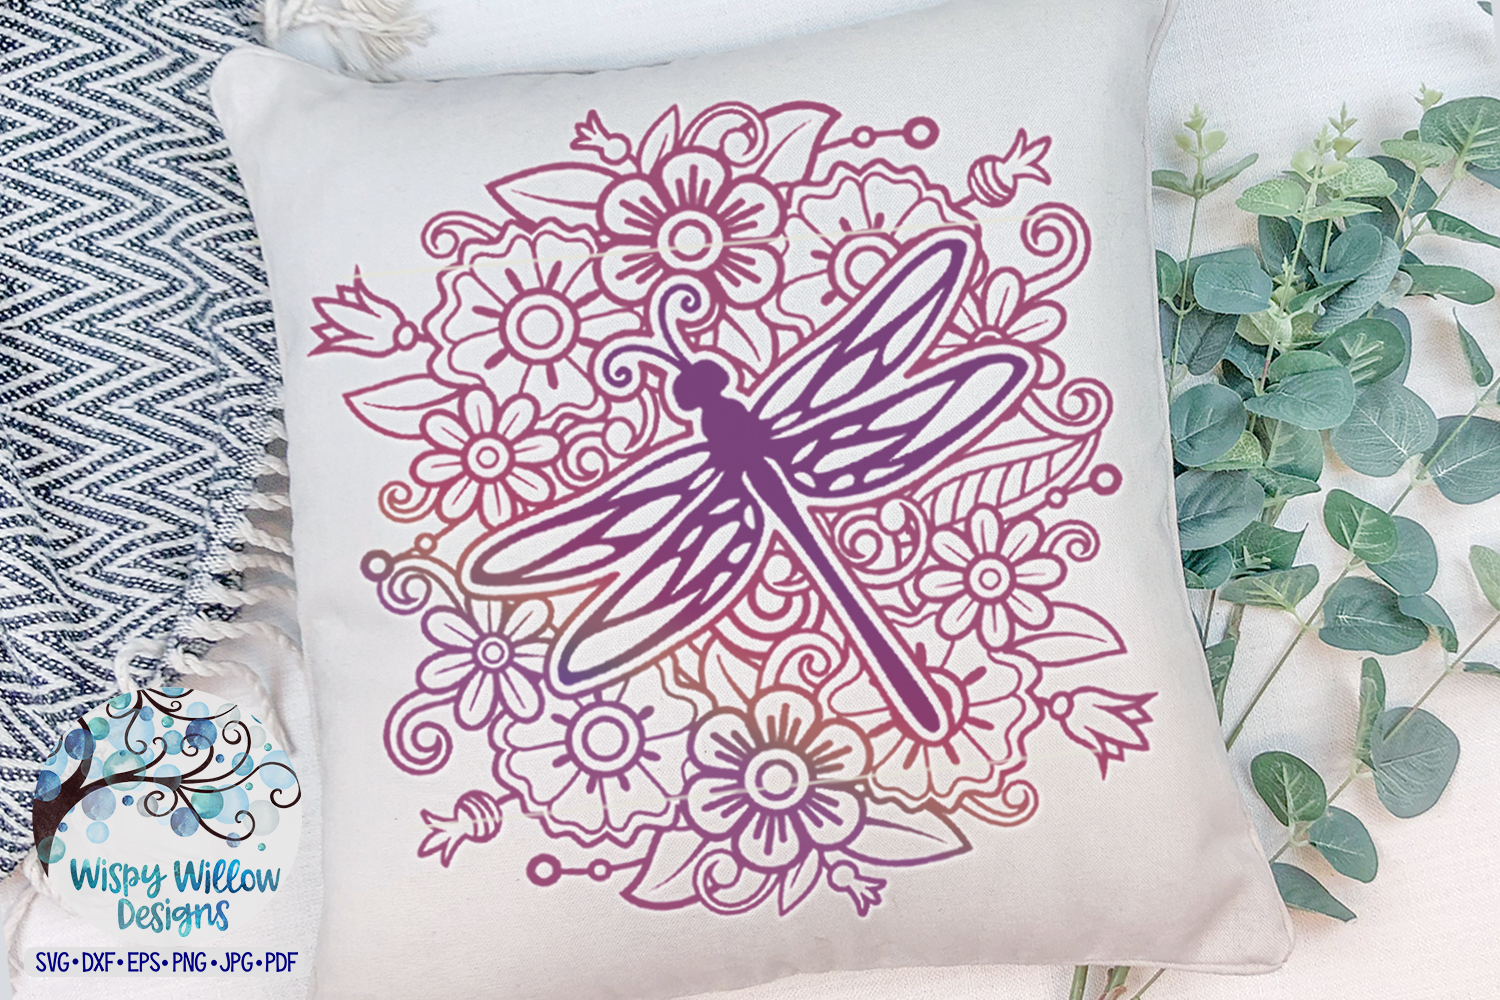 Dragonfly Mandala SVG | Dragonfly with Flowers SVG Cut File example image 2